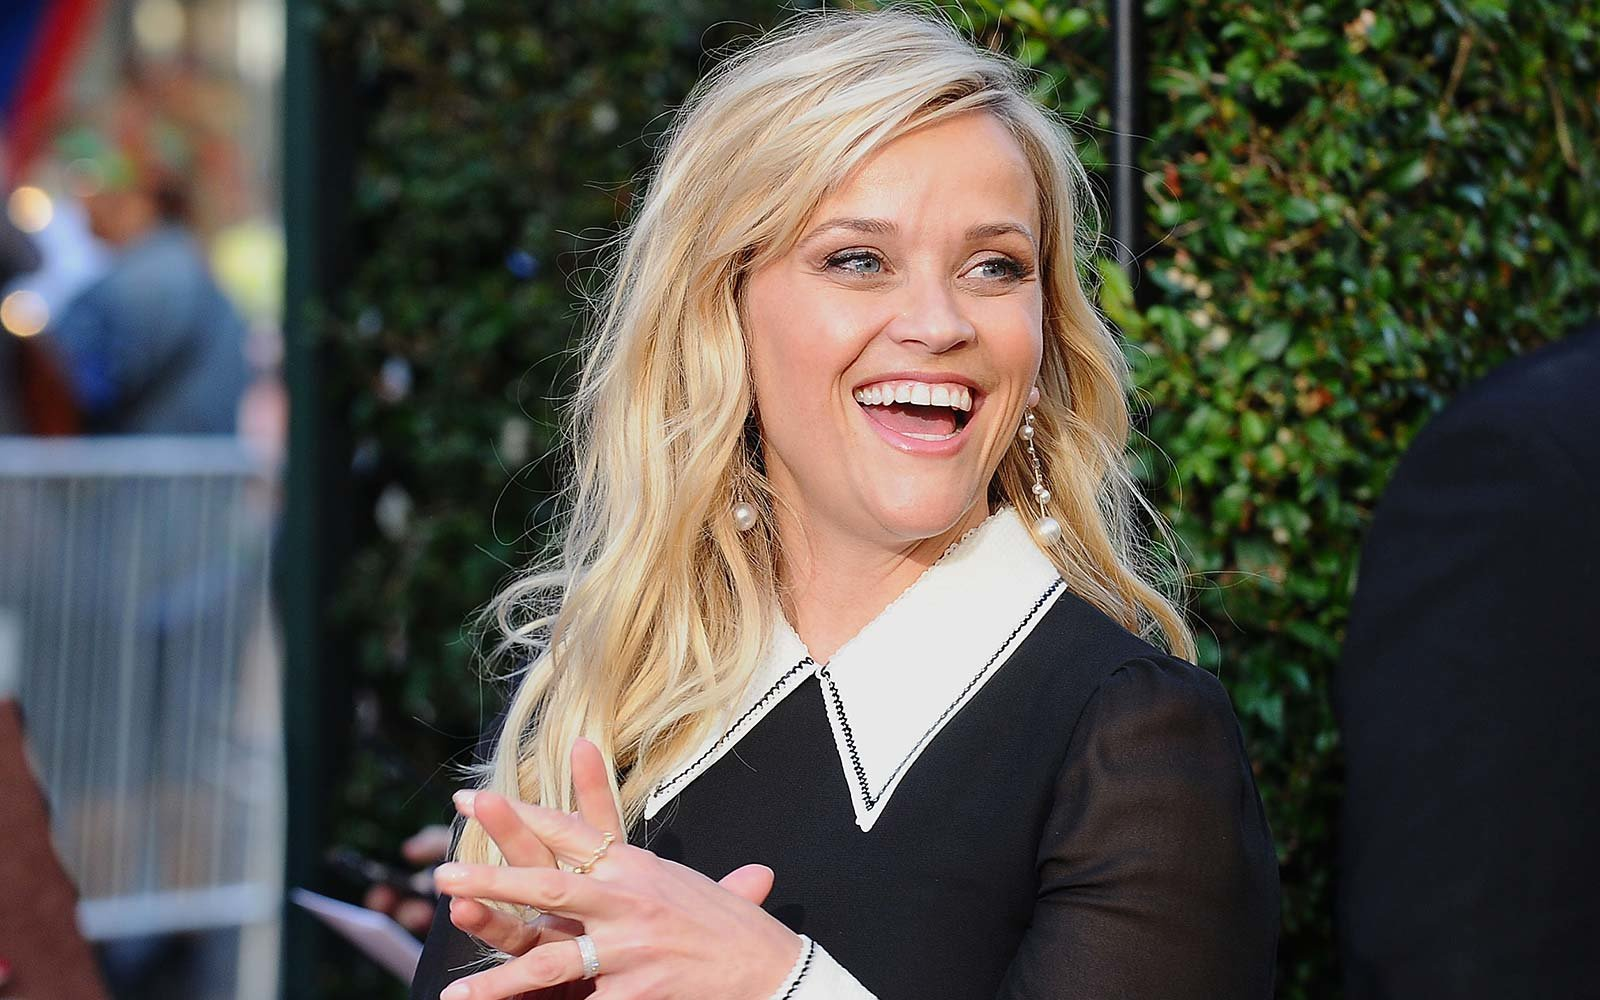 Actress Reese Witherspoon attends the AFI Life Achievement Award gala at Dolby Theatre on June 8, 2017 in Hollywood, California